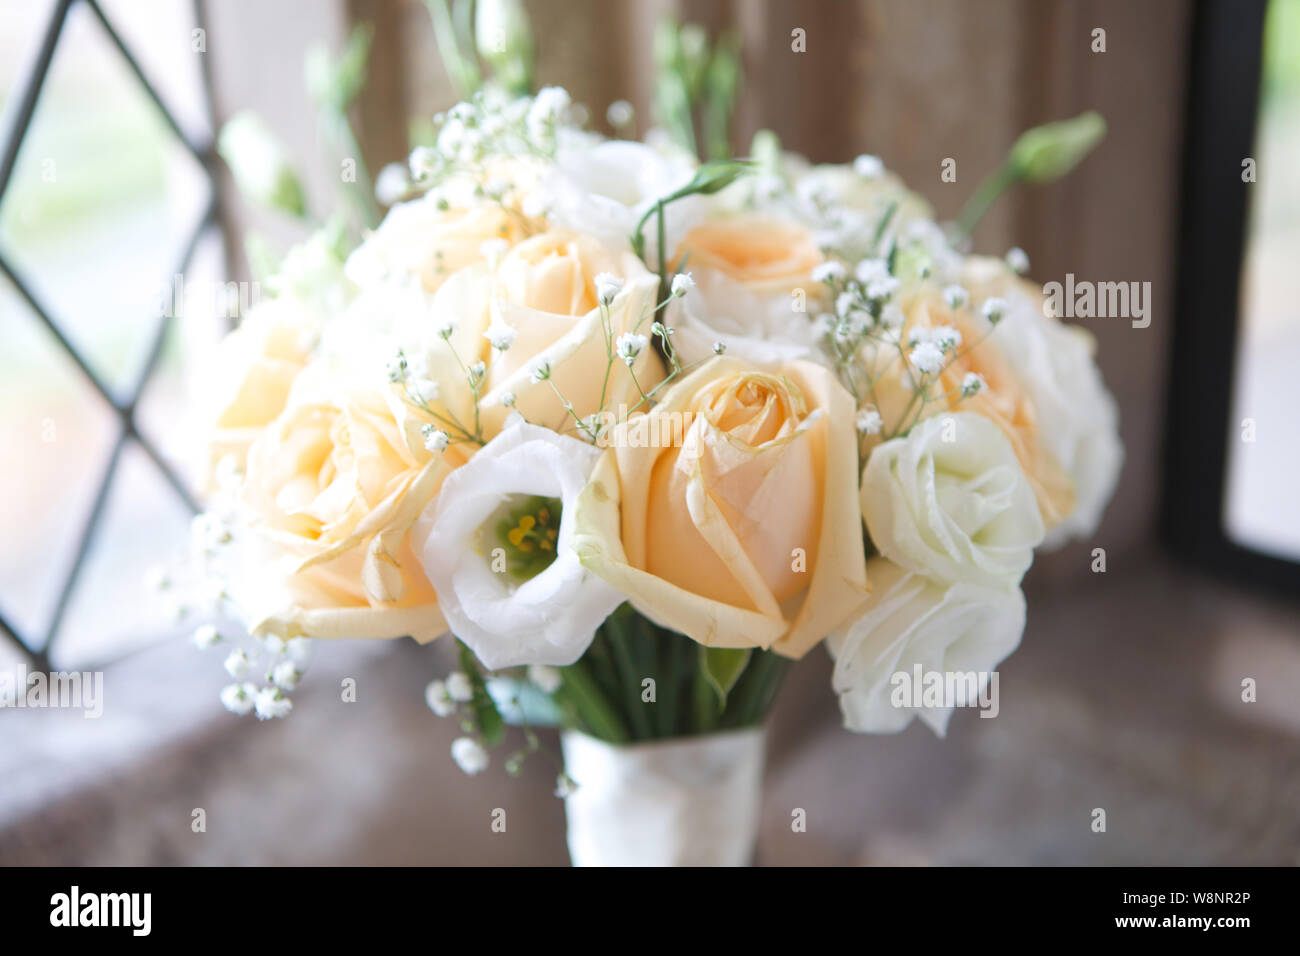 Hand Tied Wedding Bouquets In White Peach Stock Photo Alamy